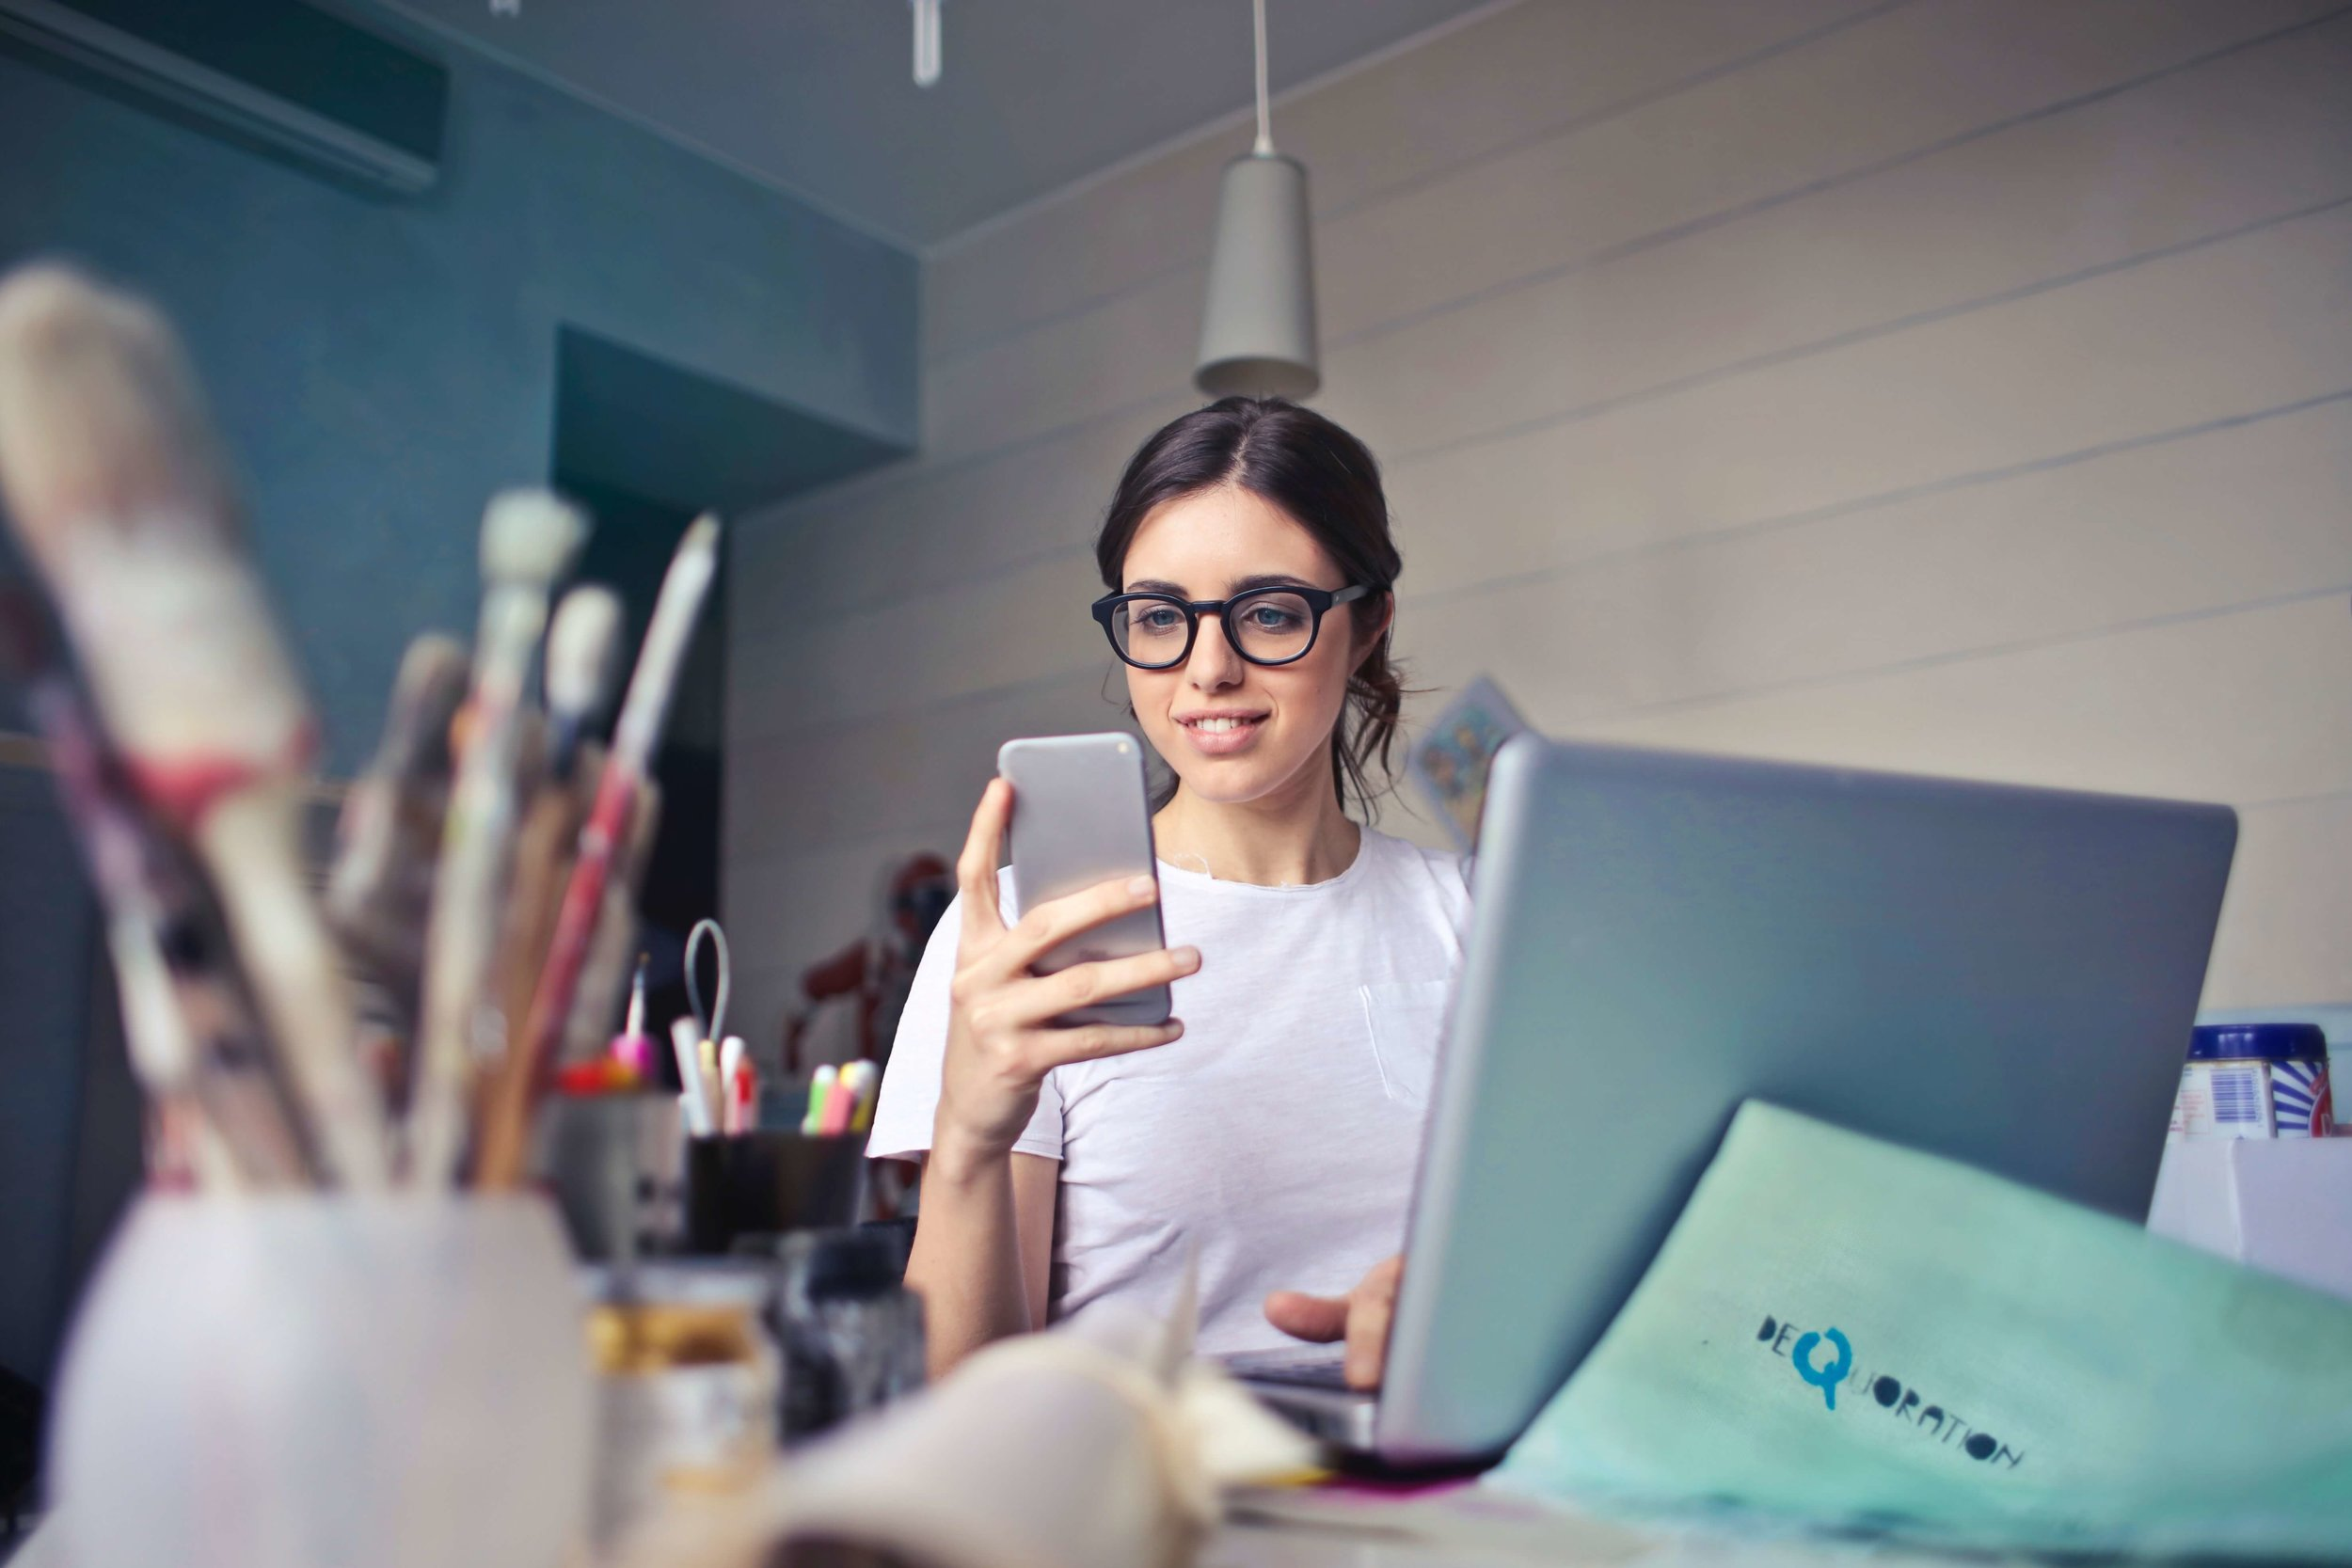 five-apps-Every-Entrepreneur-Should-Know-About-hatch-tribe-women-business-productivity